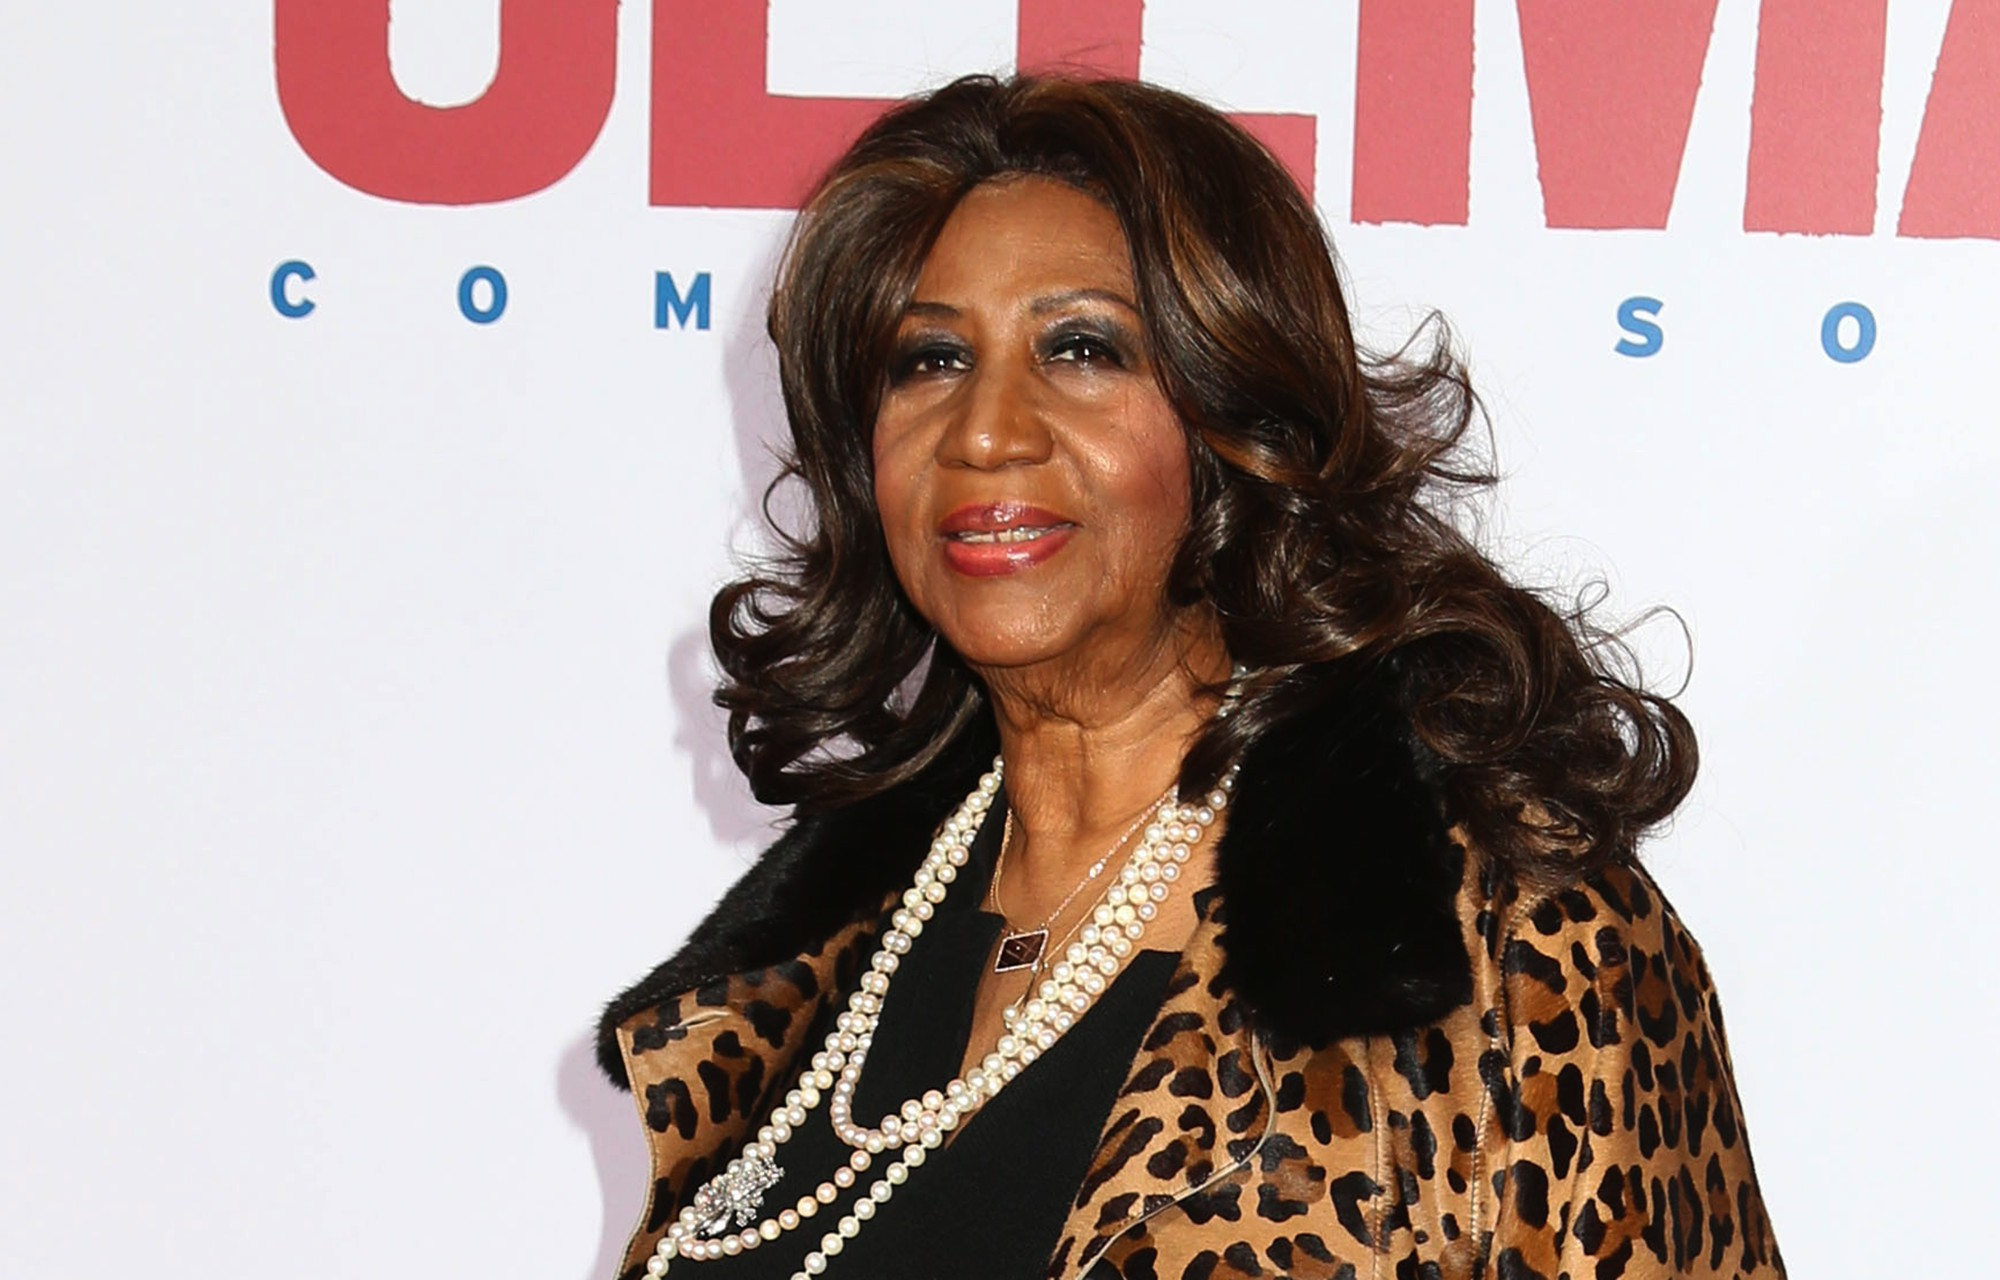 """aretha-franklins-sons-and-niece-showed-no-respect-on-the-anniversary-of-her-death-but-fight-over-her-money-after-almost-1-million-in-uncashed-checks-were-discovered"""